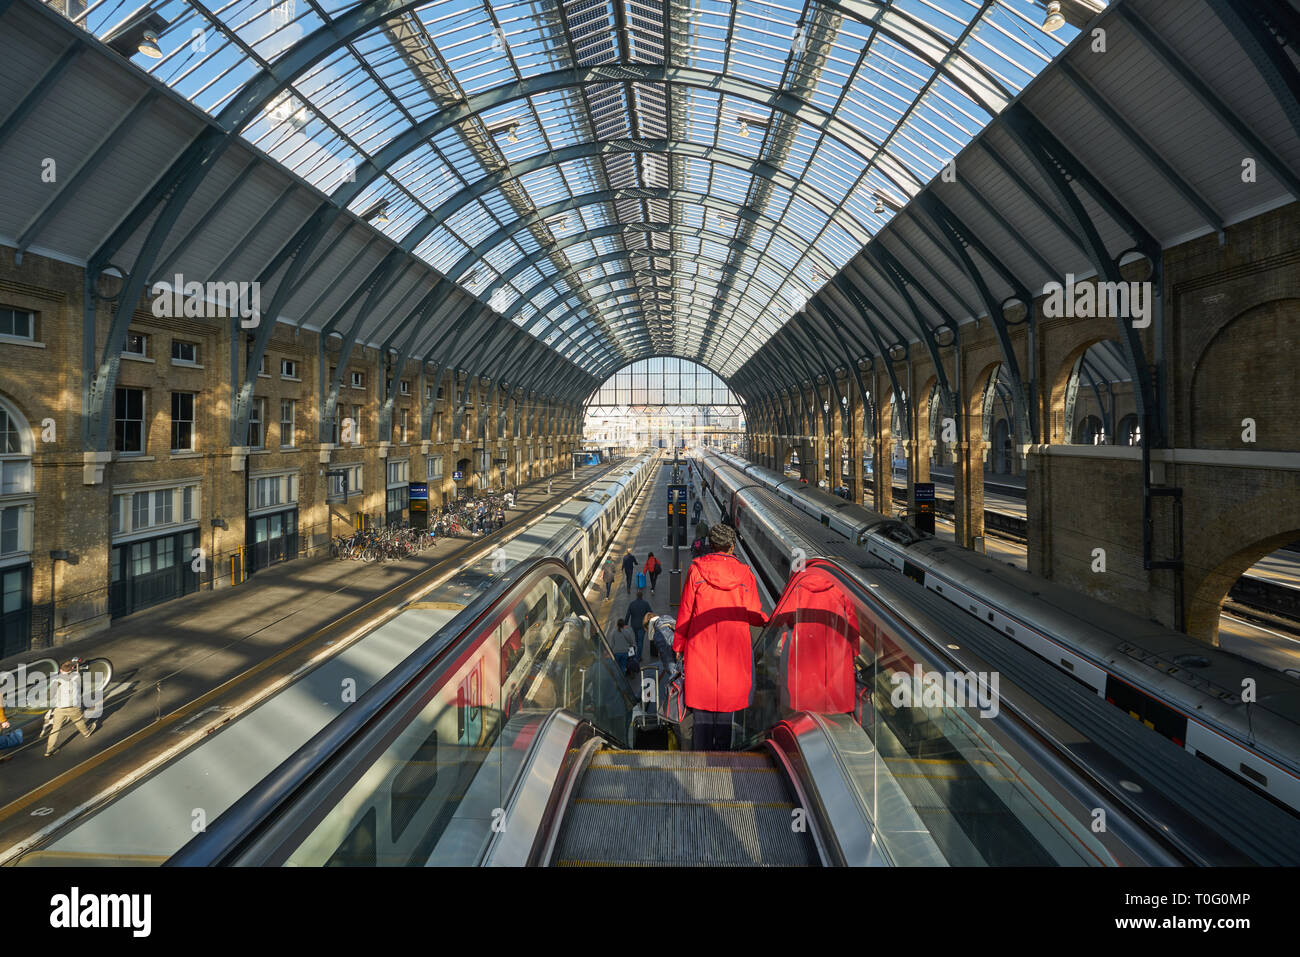 kings cross station escalators Stock Photo